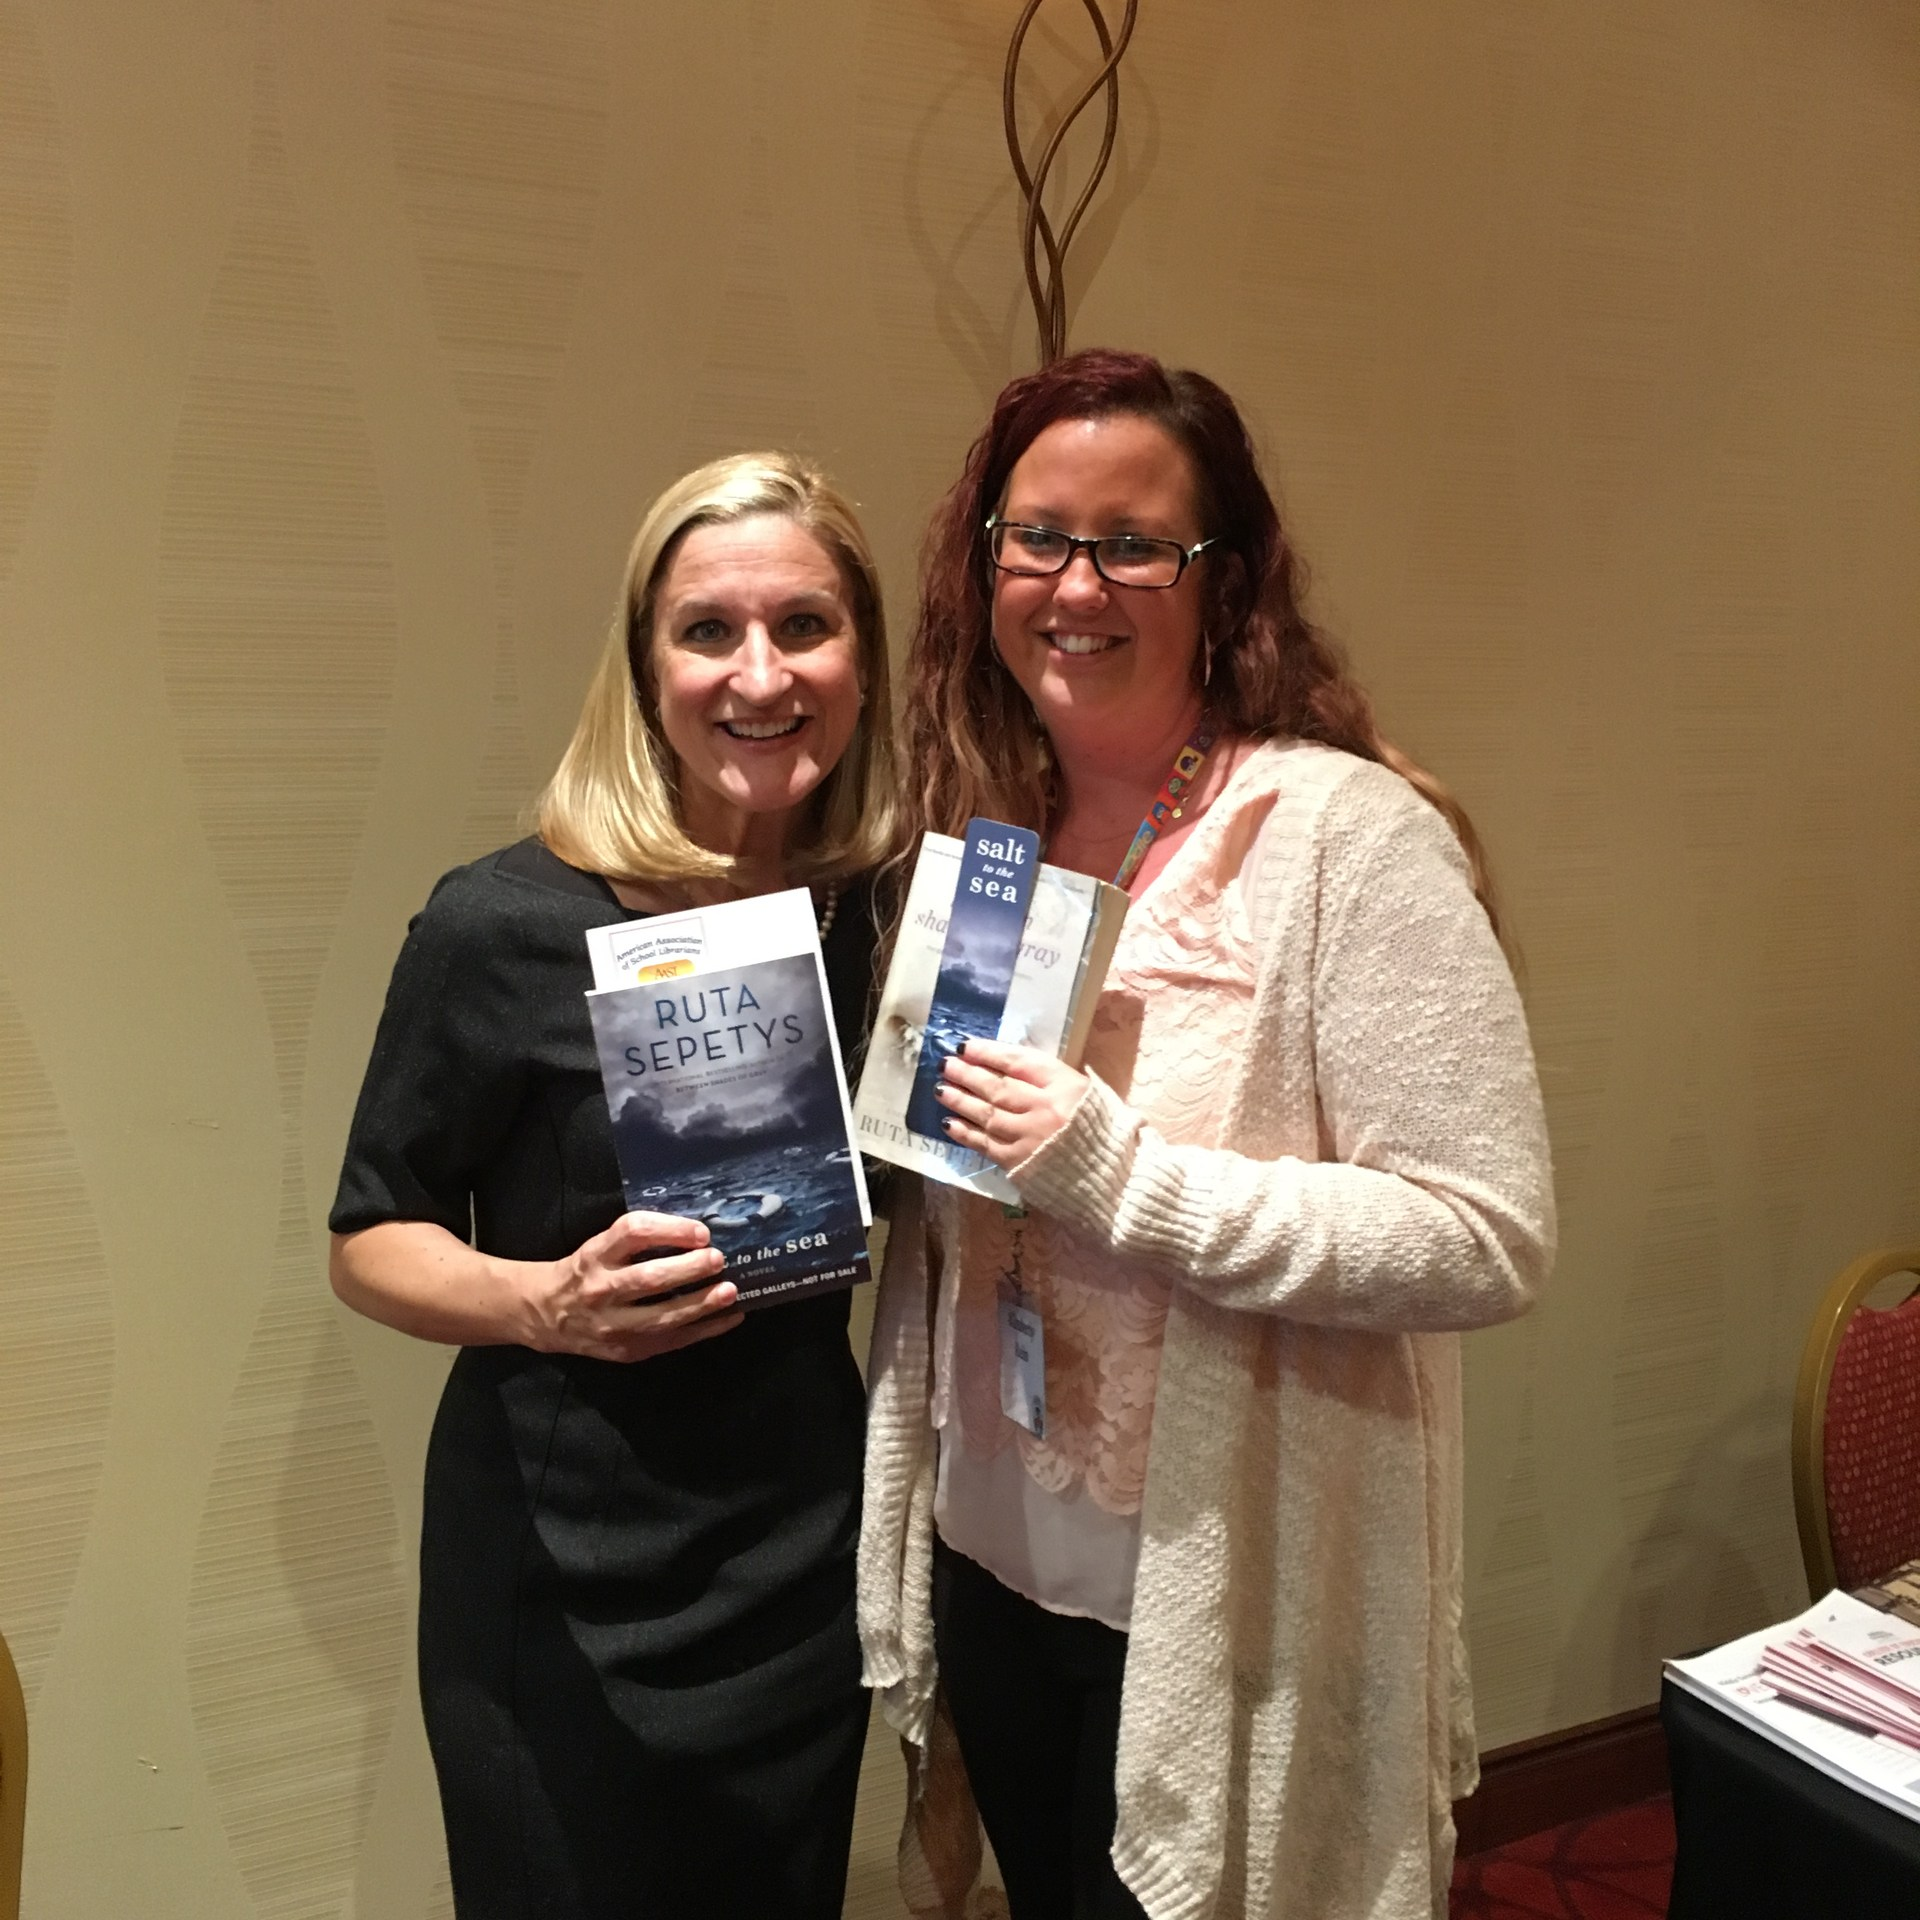 Ms. Rein with author Ruta Sepetys 2016